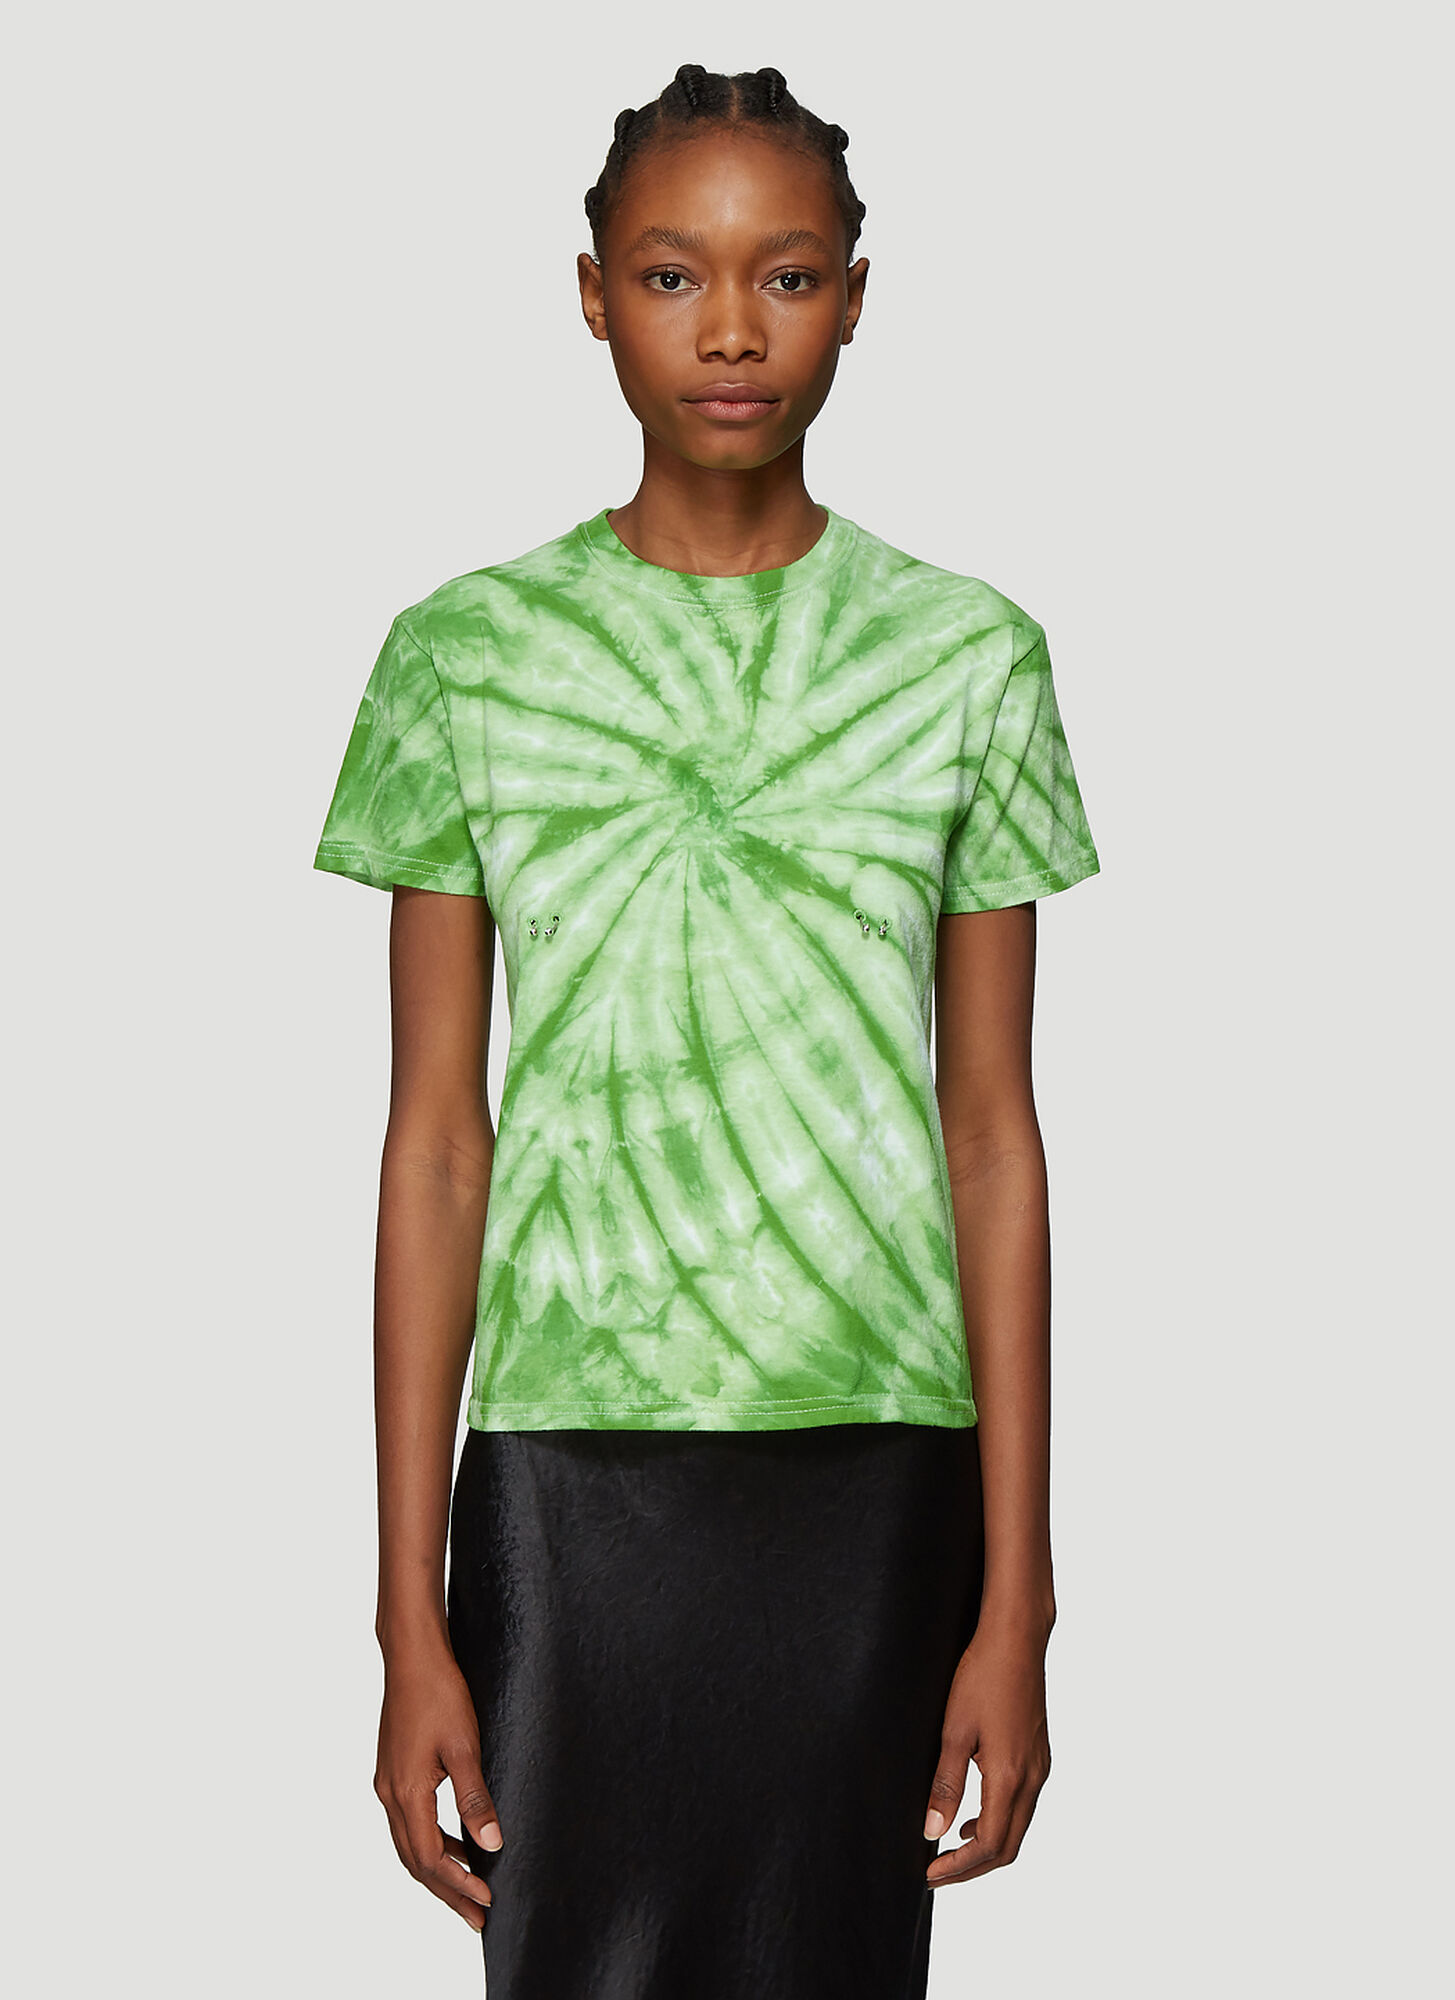 Collina Strada Pierced Tie Dye T-Shirt in Green